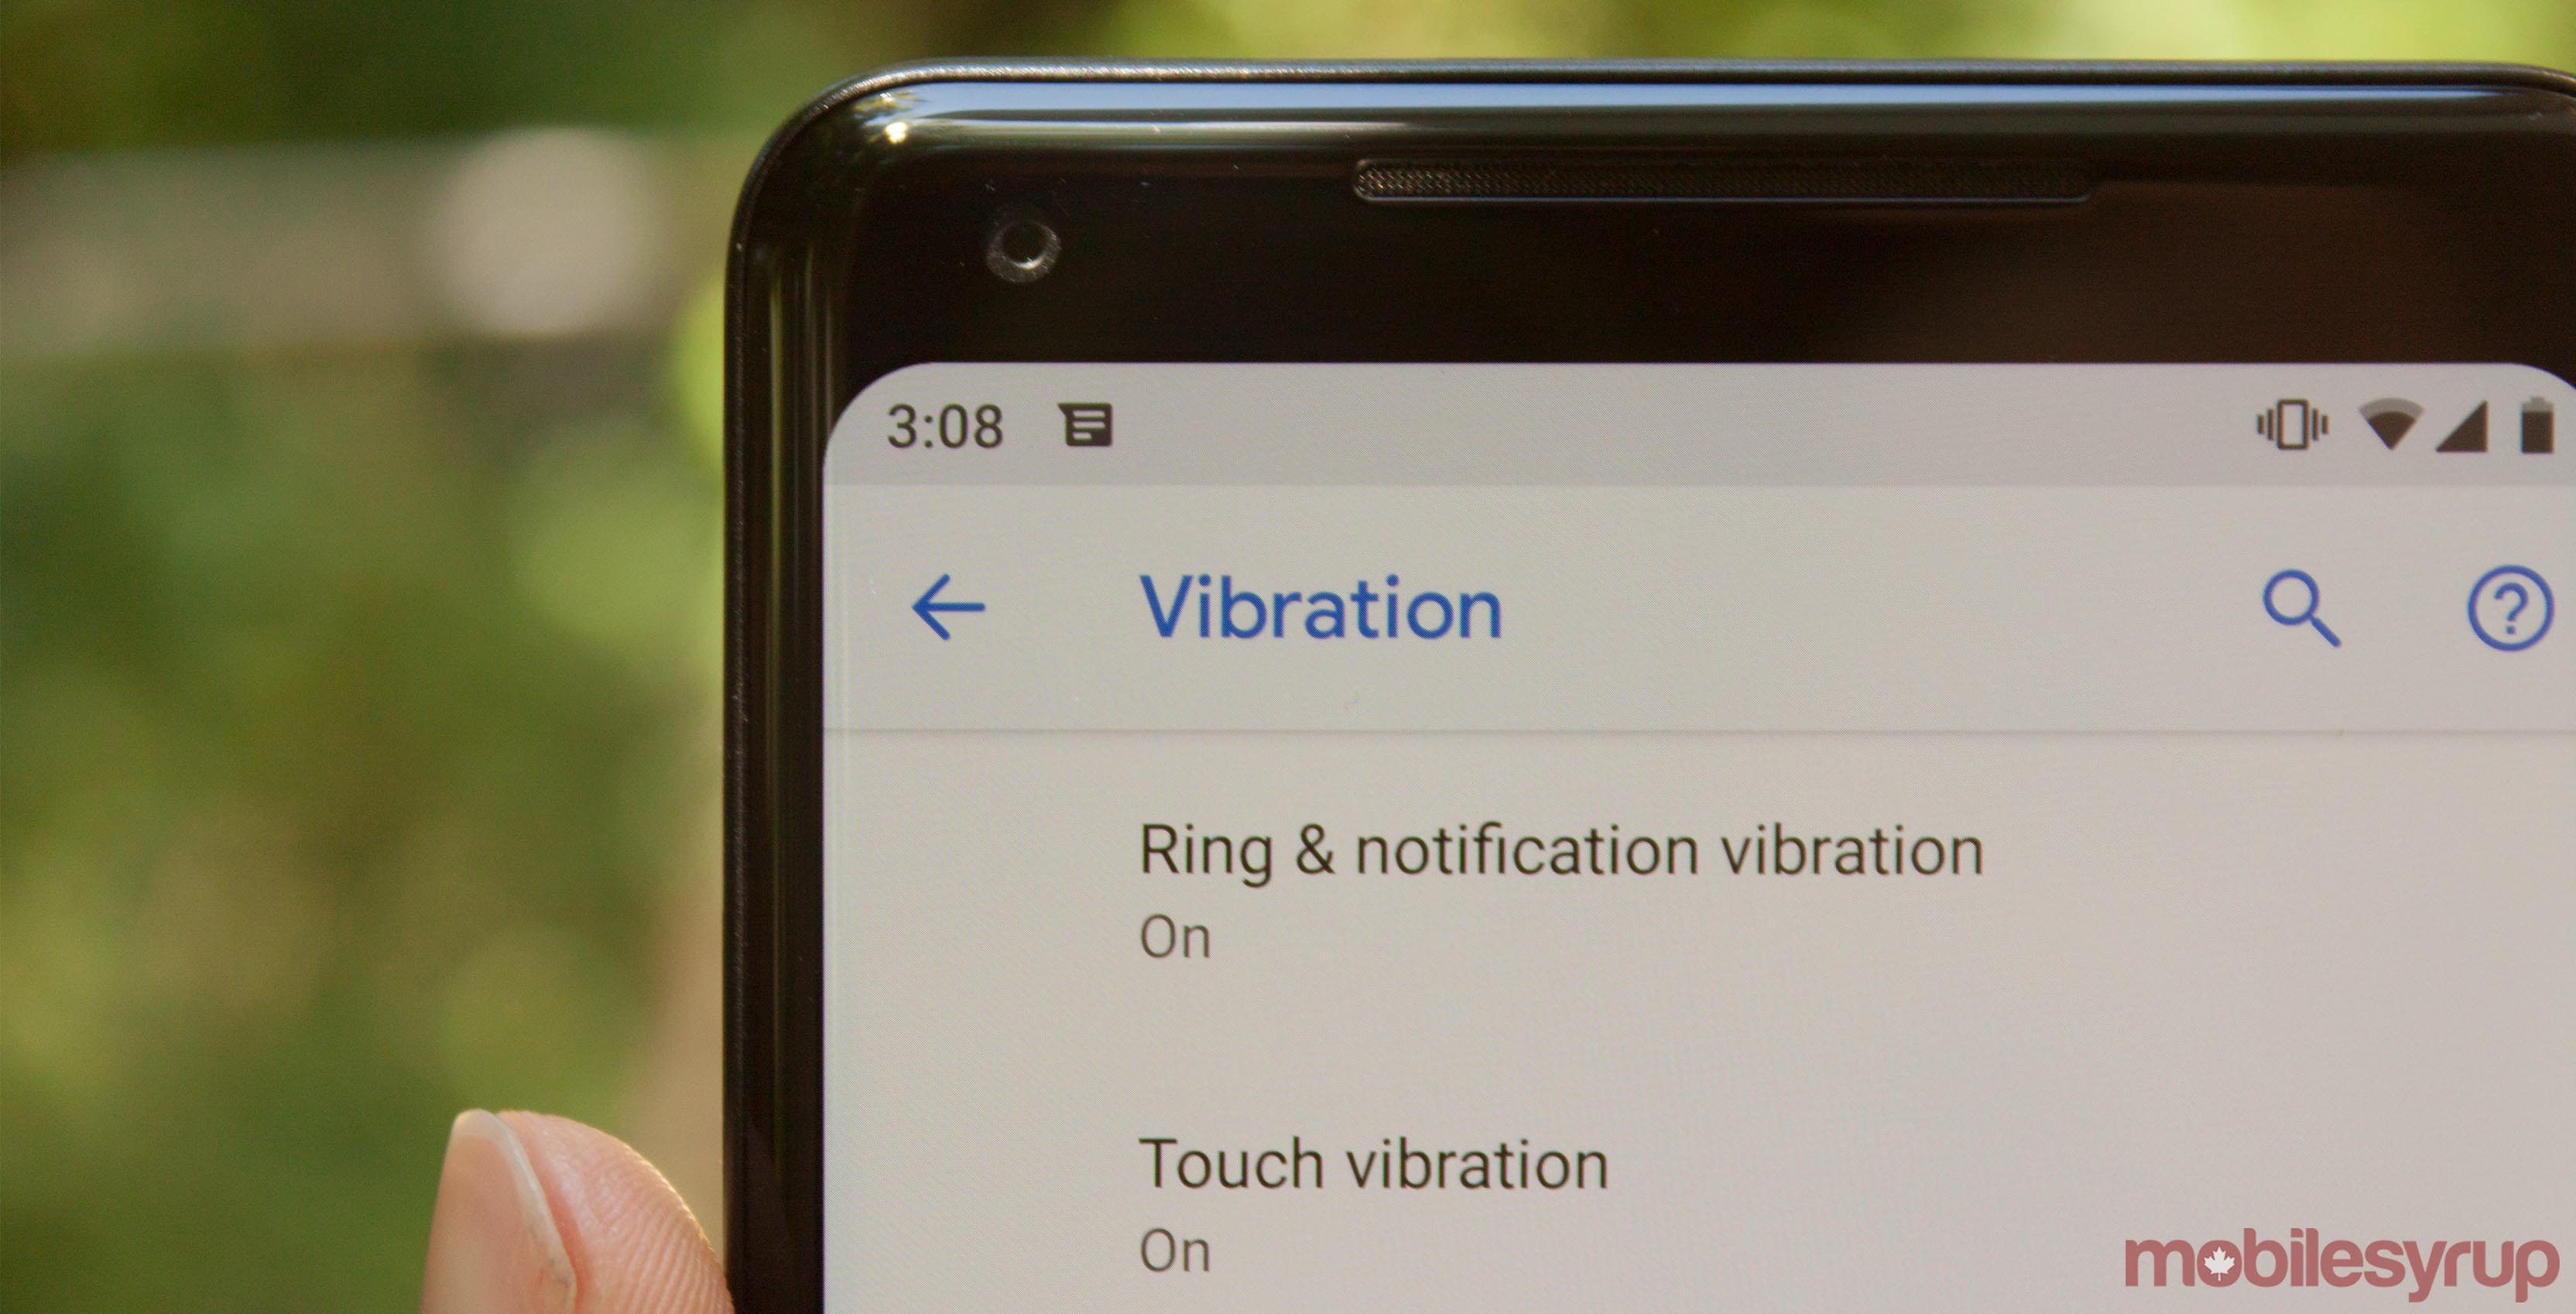 Vibration options in Android P